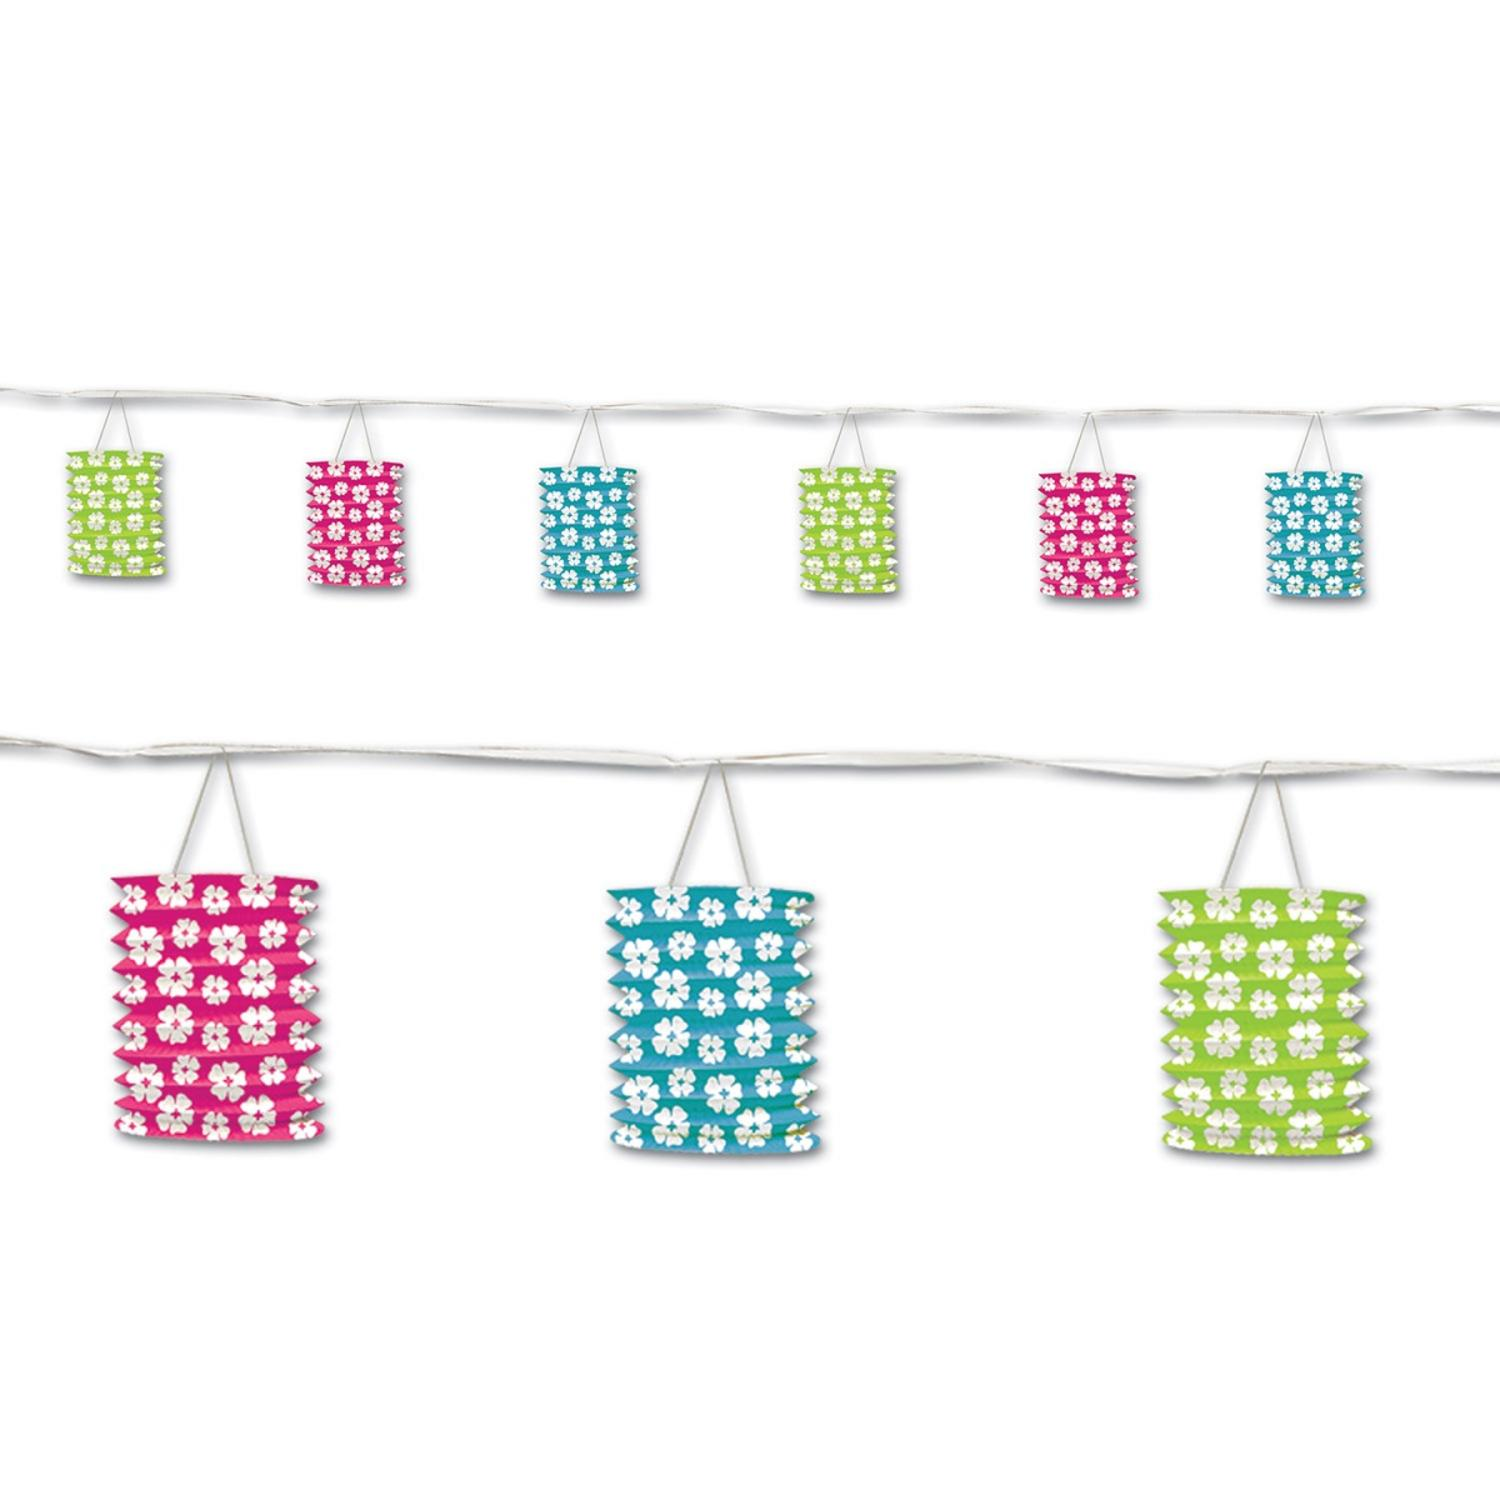 Pack of 6 Cheery Luau Hibiscus Floral Lantern Garland Hanging Decorations 12'